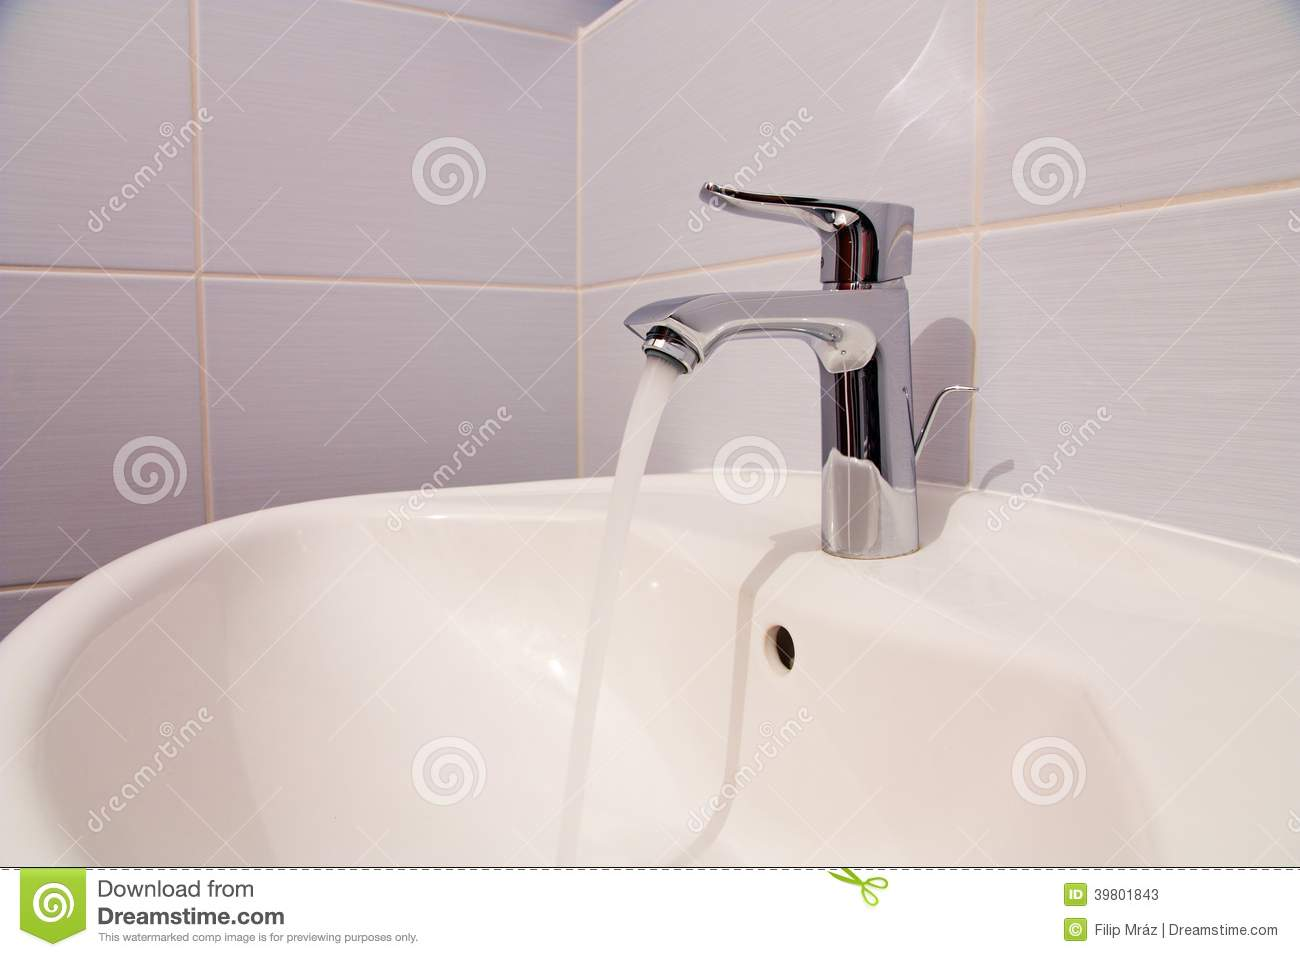 Bathroom tab stock image. Image of interiors, cold, cool - 39801843